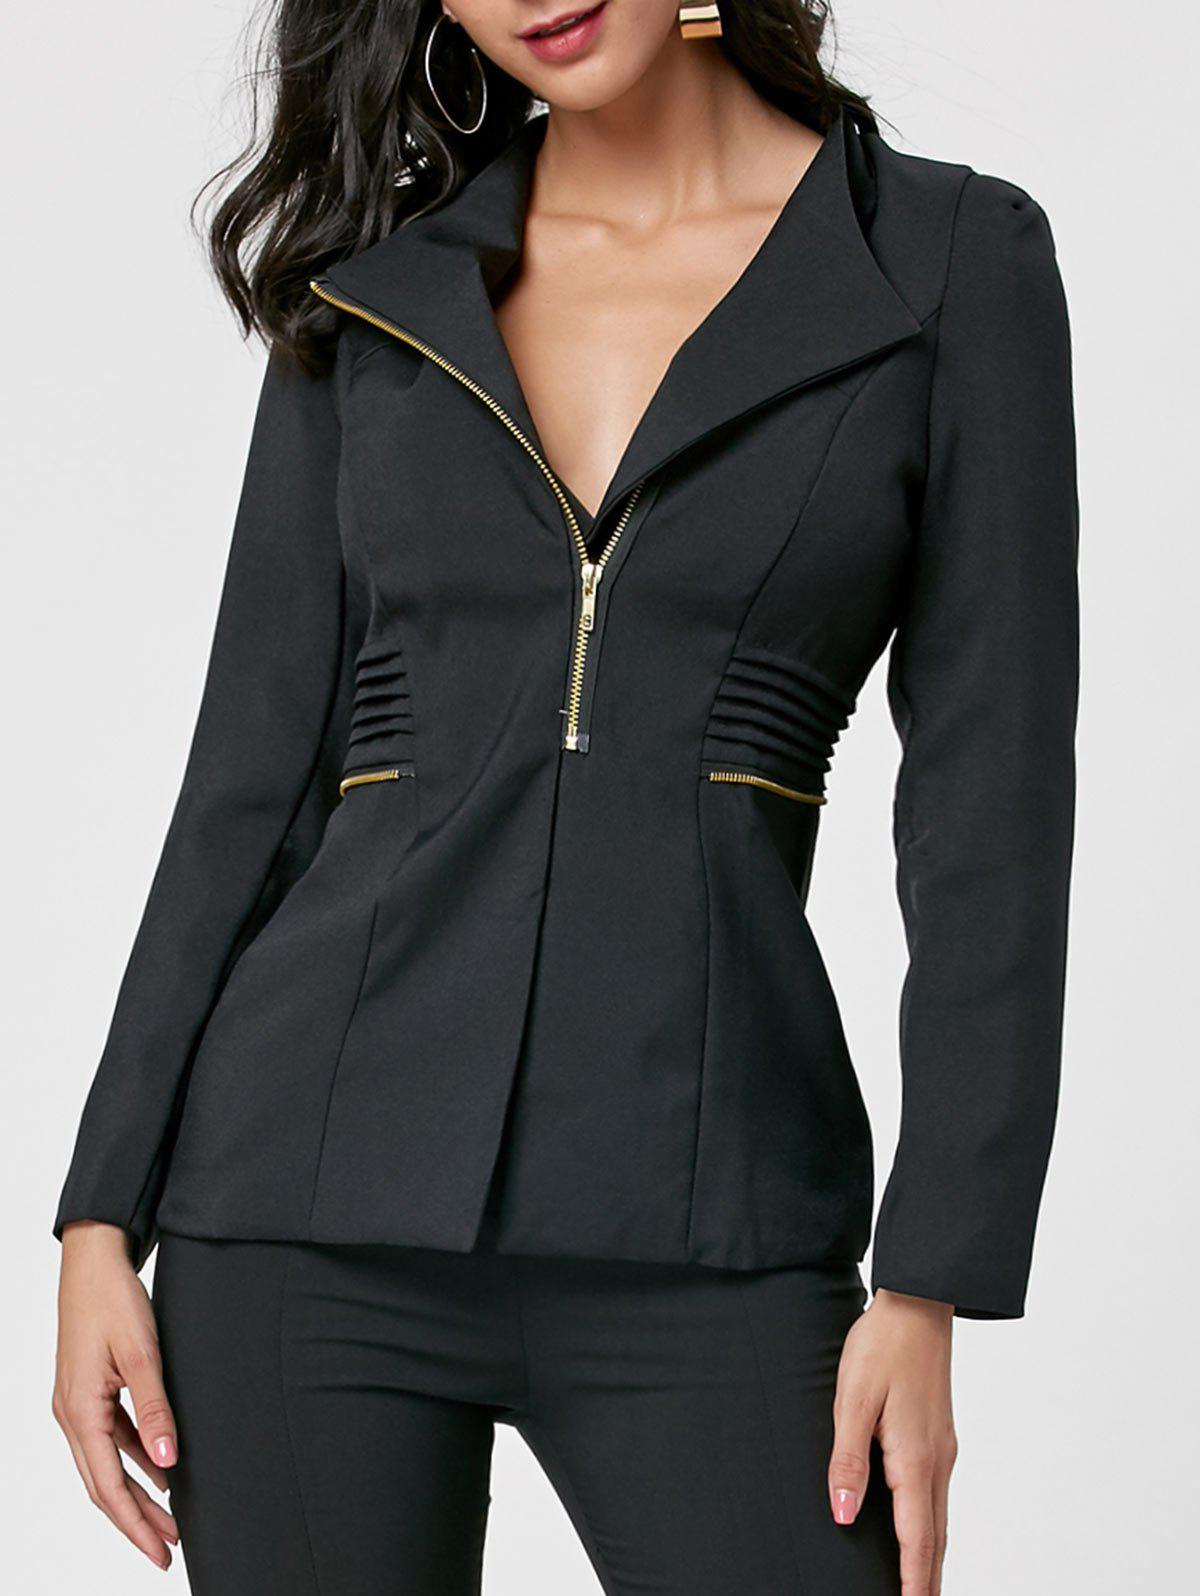 Ruched Zipper Design Tunic Blazer - Noir M